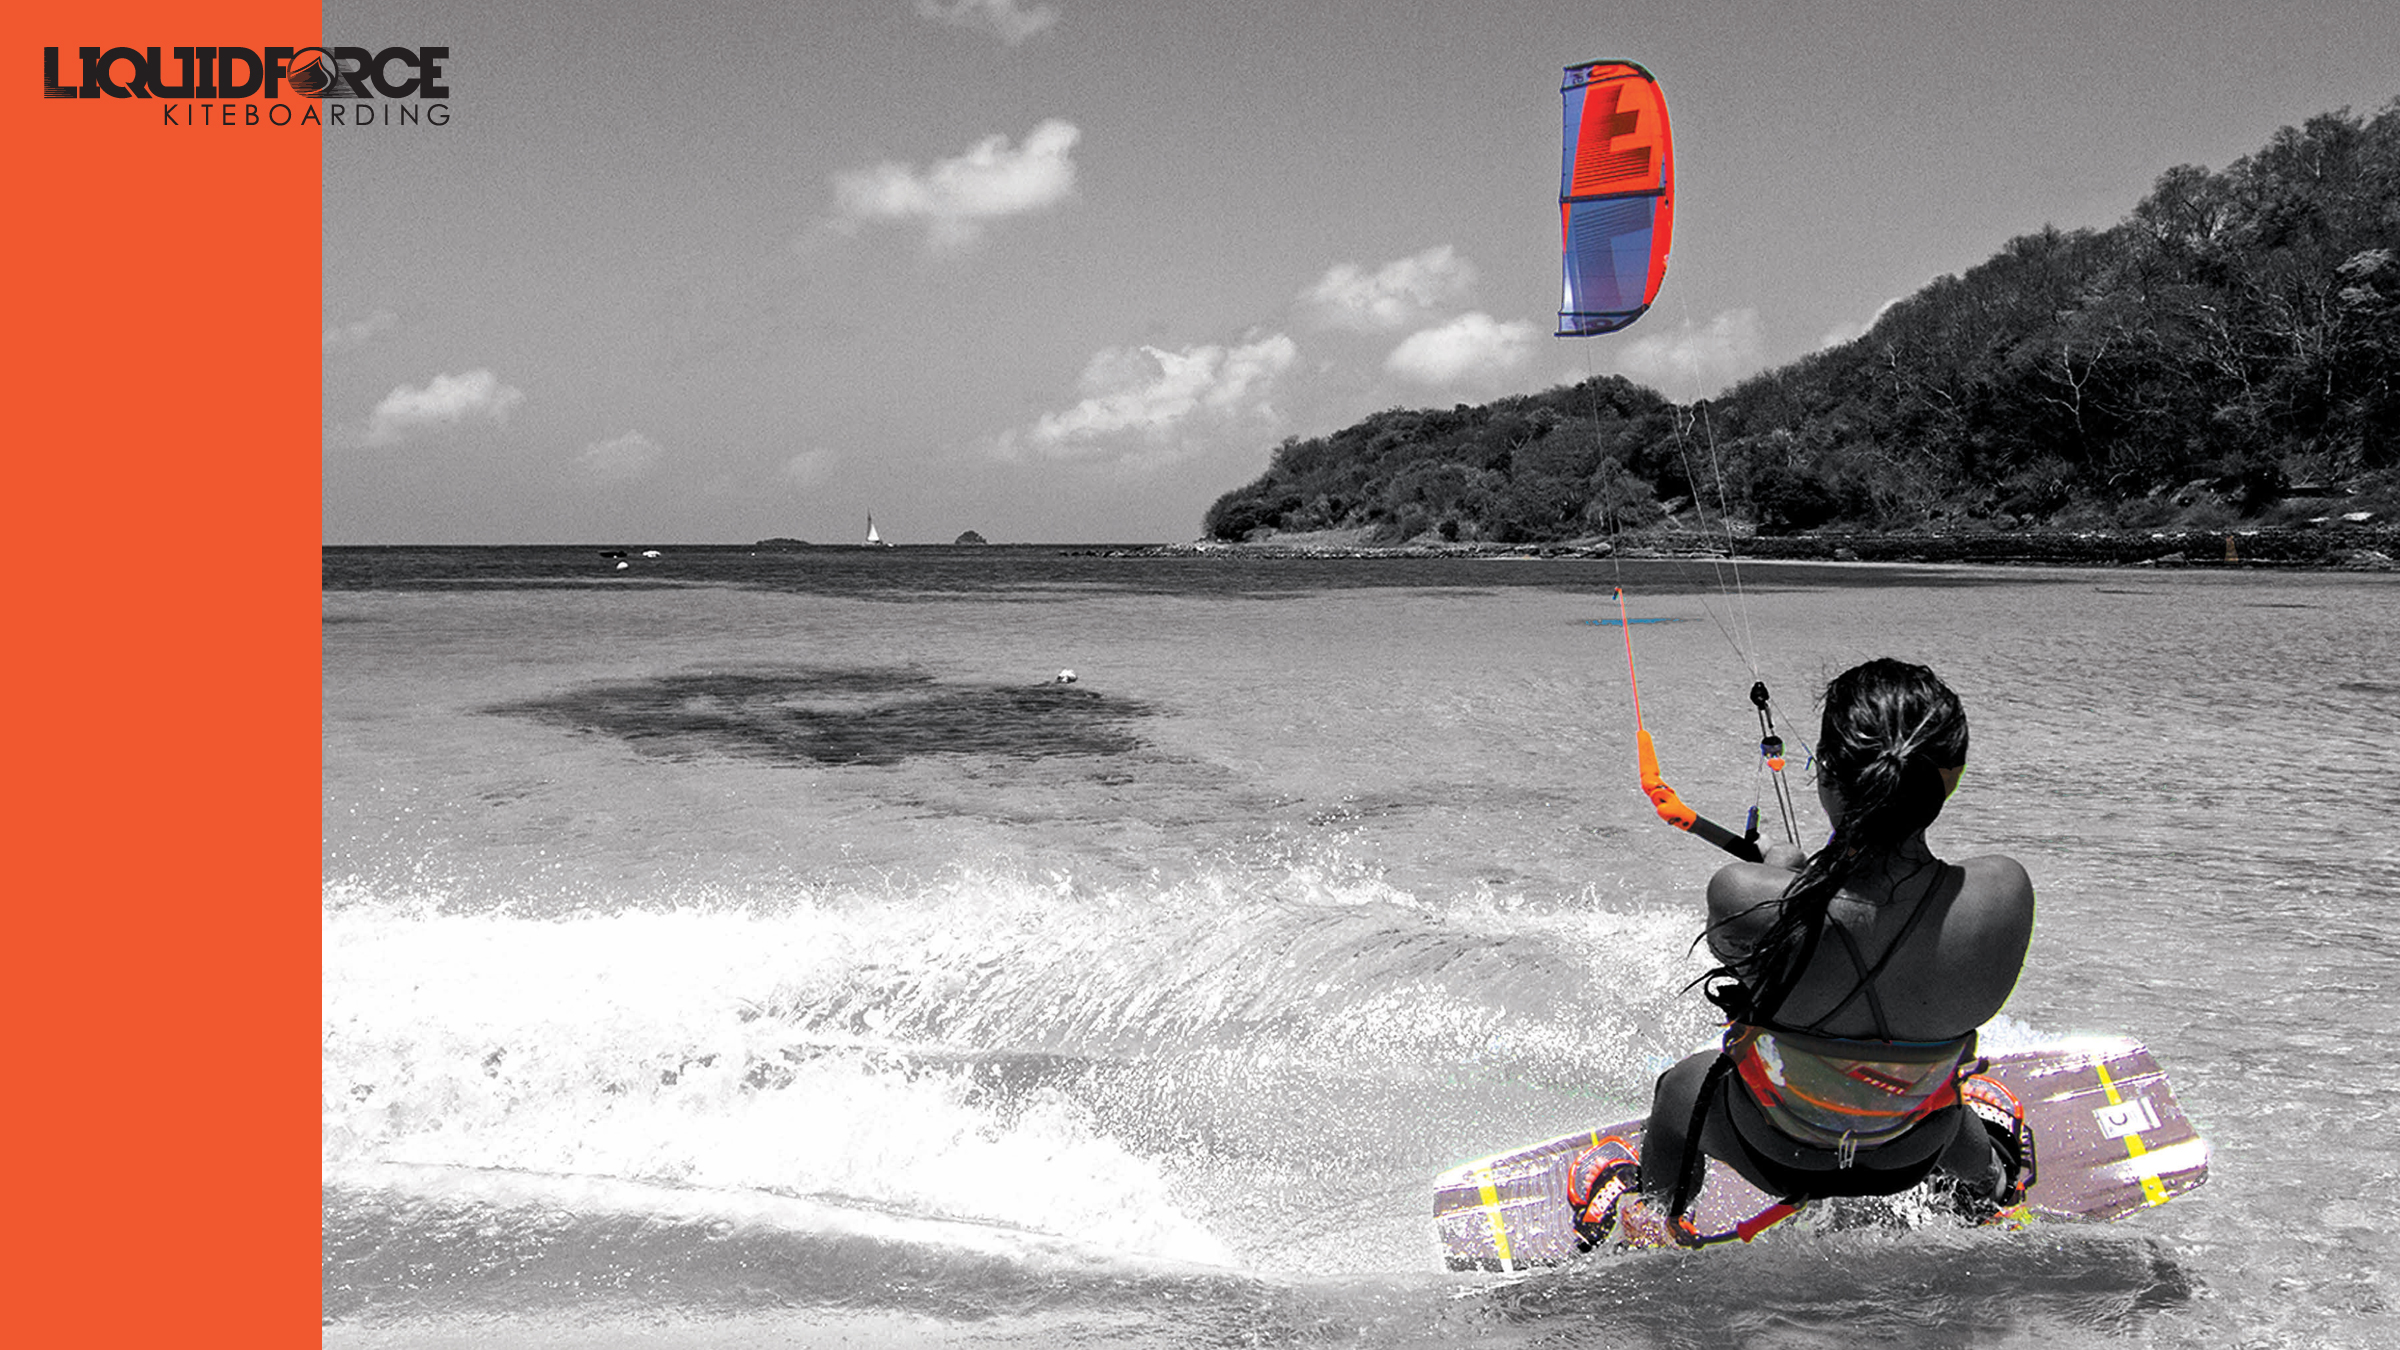 kitesurf wallpaper image - Sensi Graves with the 2015 Liquid Force Envy Kite and riding the carbon element kiteboard - in resolution: High Definition - HD 16:9 2400 X 1350